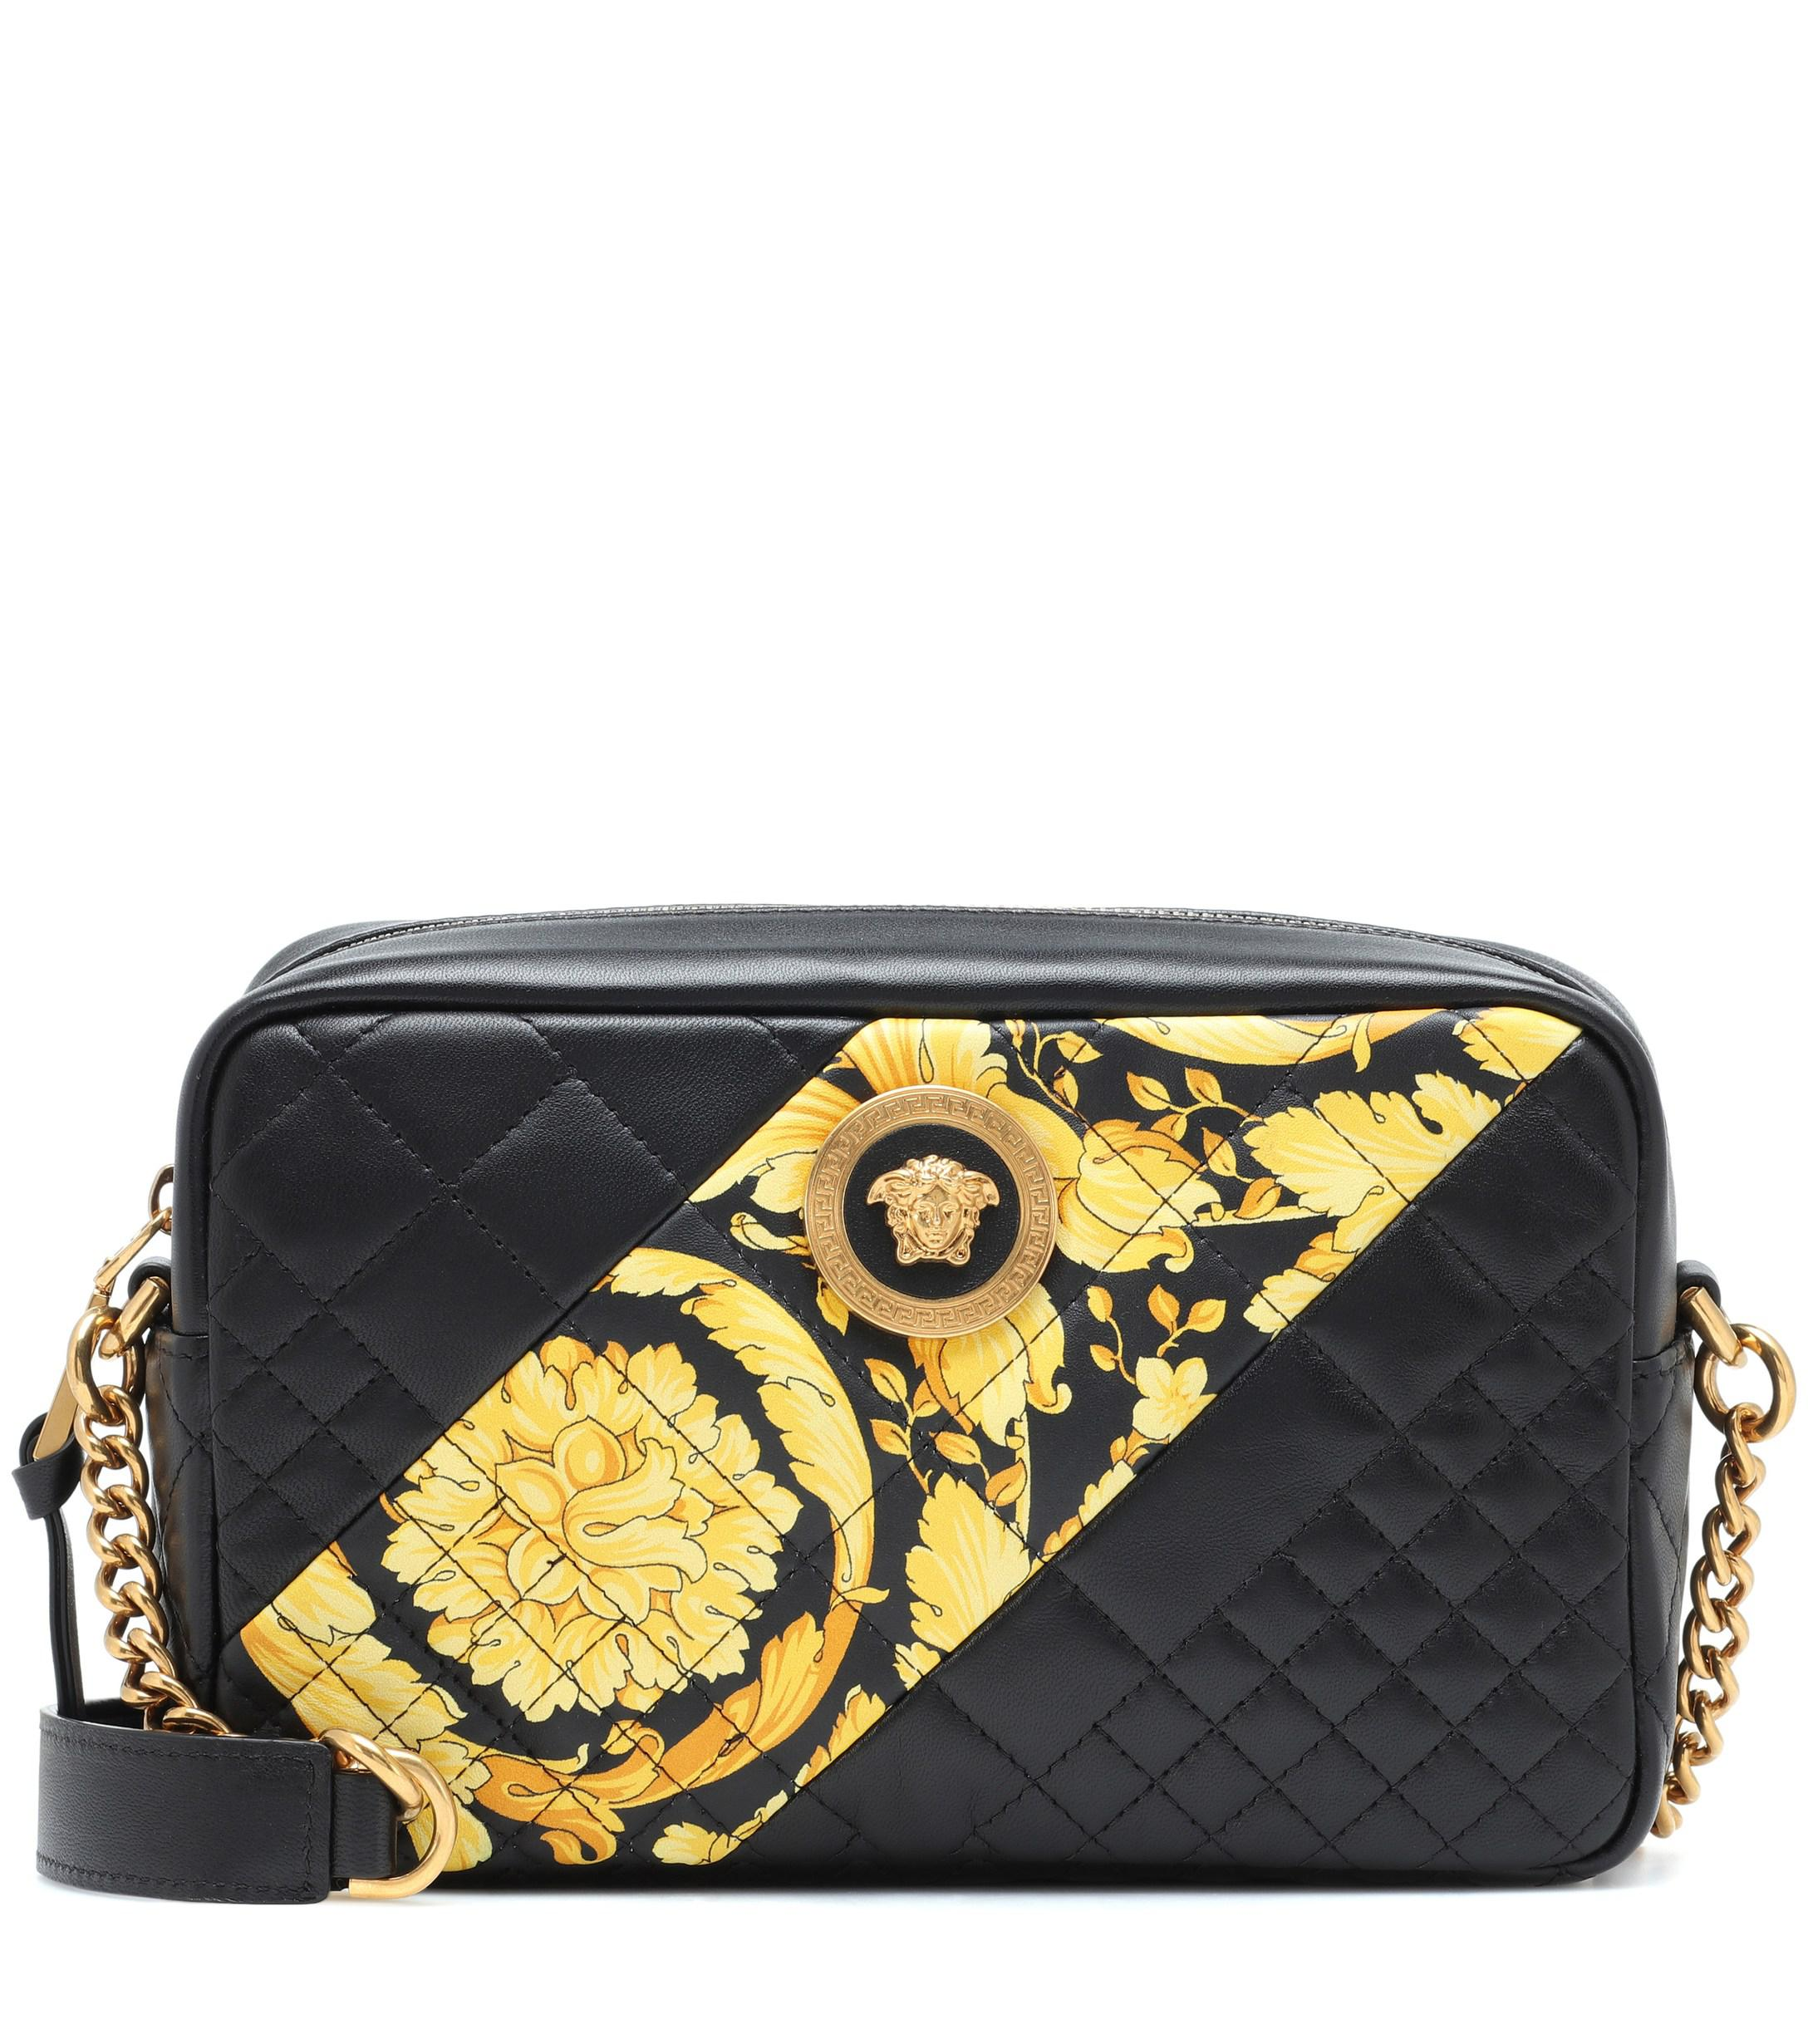 68455b9b75 Versace Icon Camera Leather Shoulder Bag in Black - Lyst